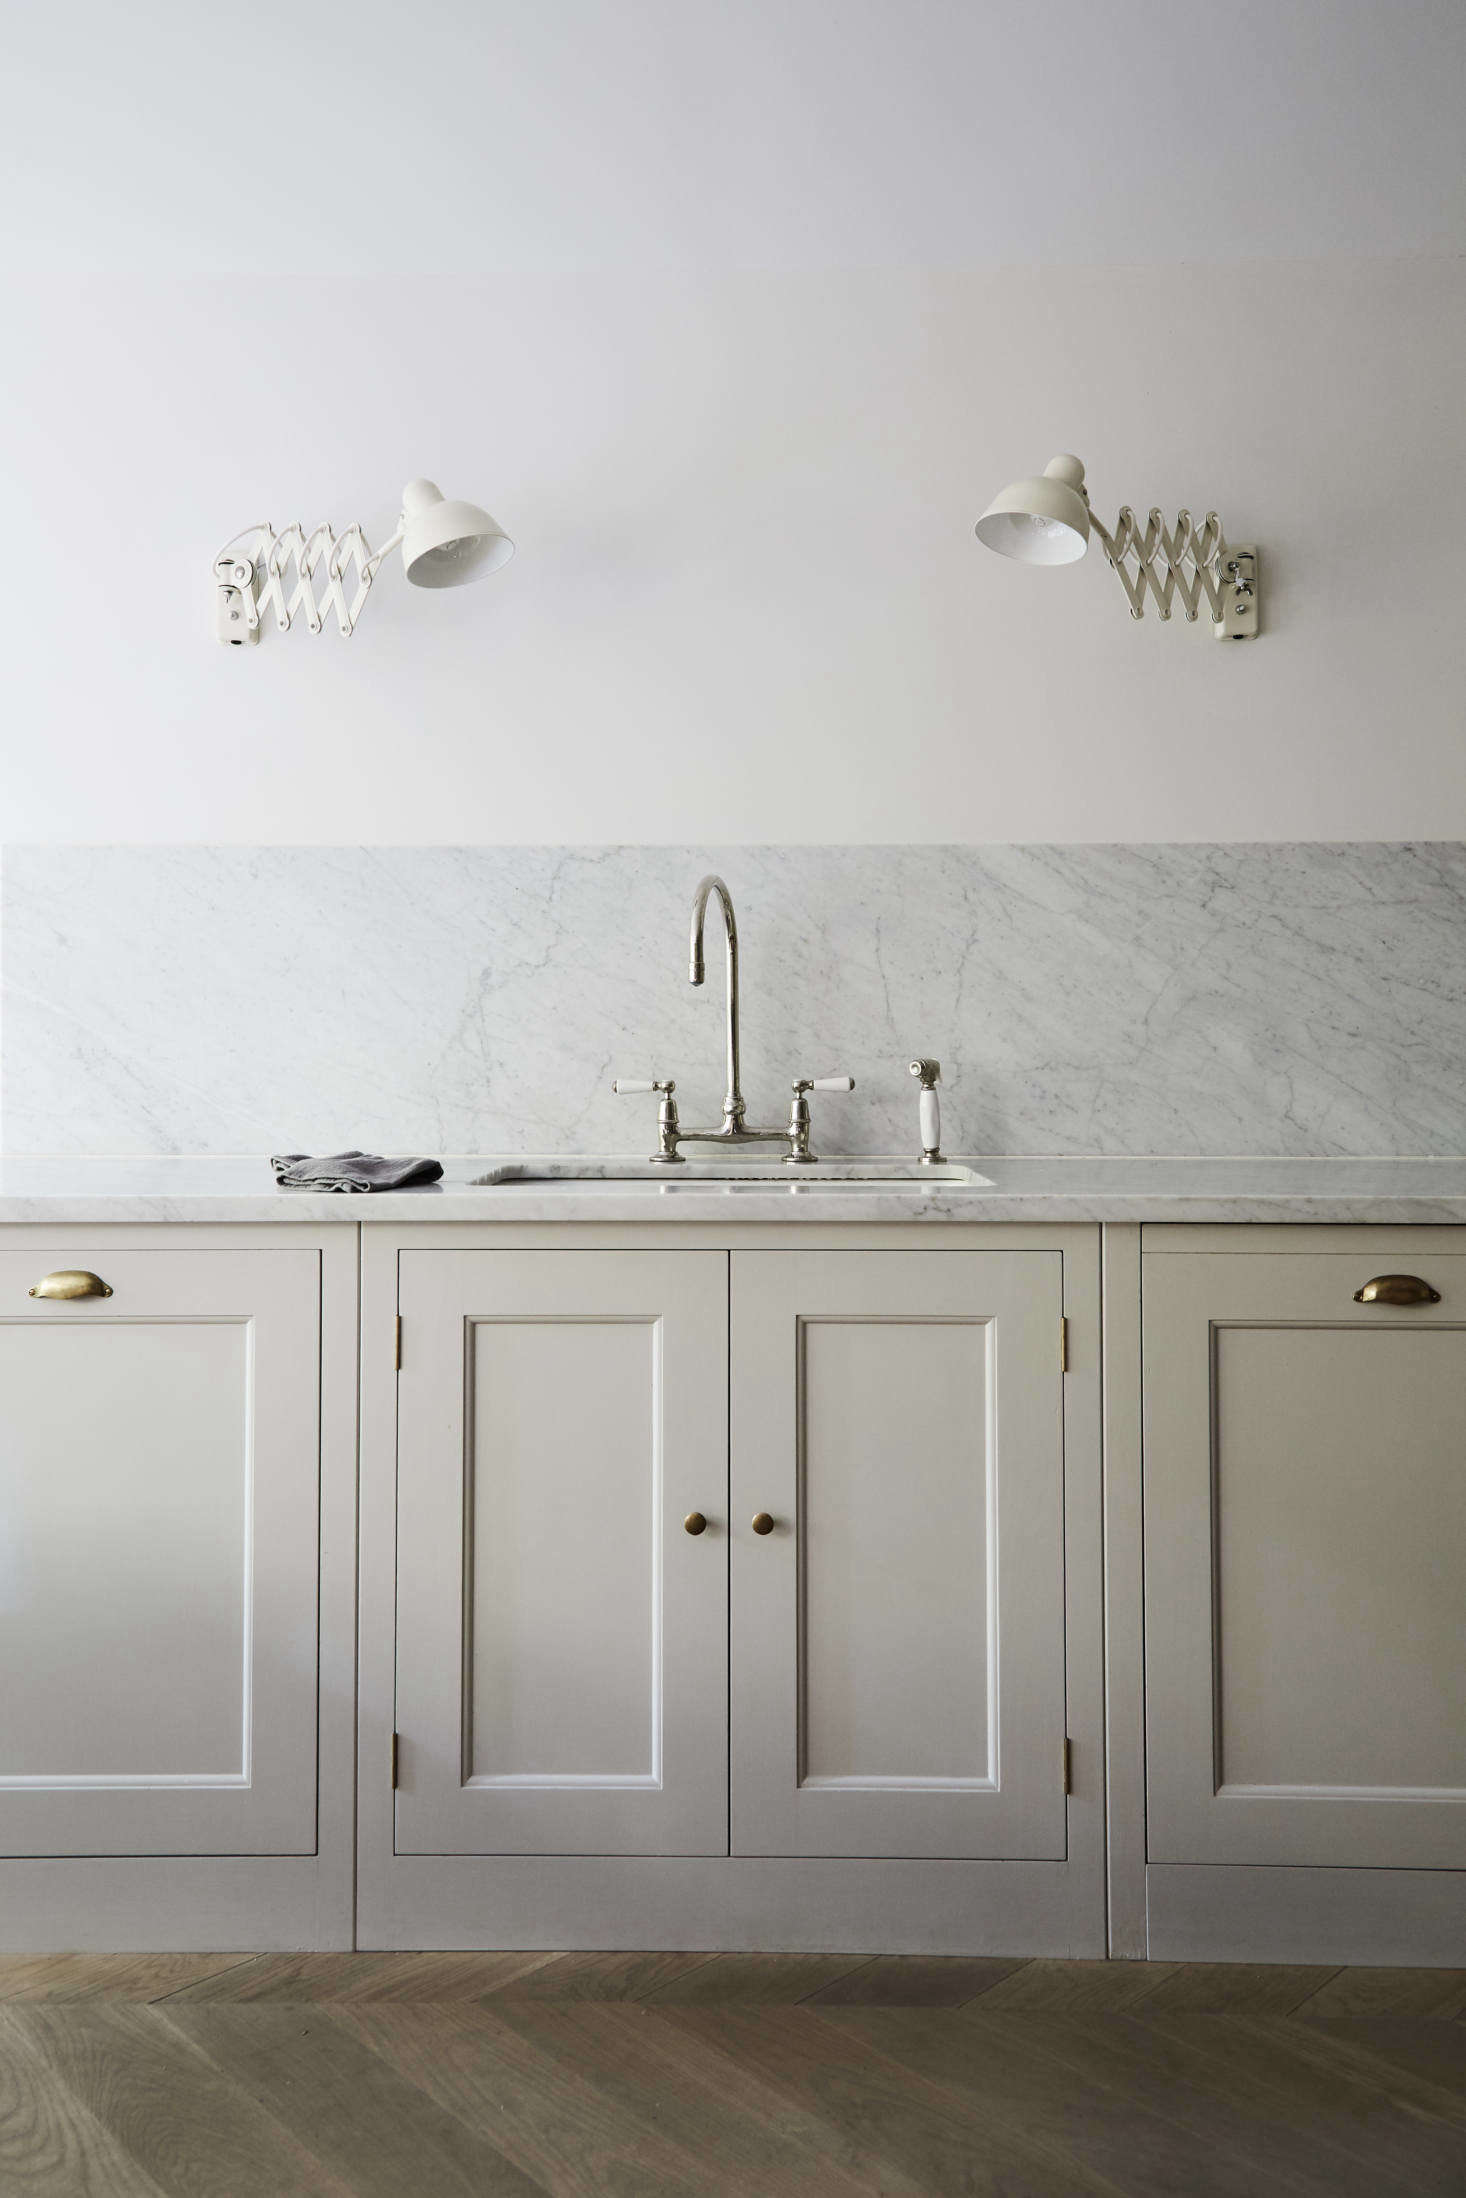 White Carrera Marble Kitchen Countertops 16 Favorite Solid Marble Kitchen Backsplashes For Maximum Drama